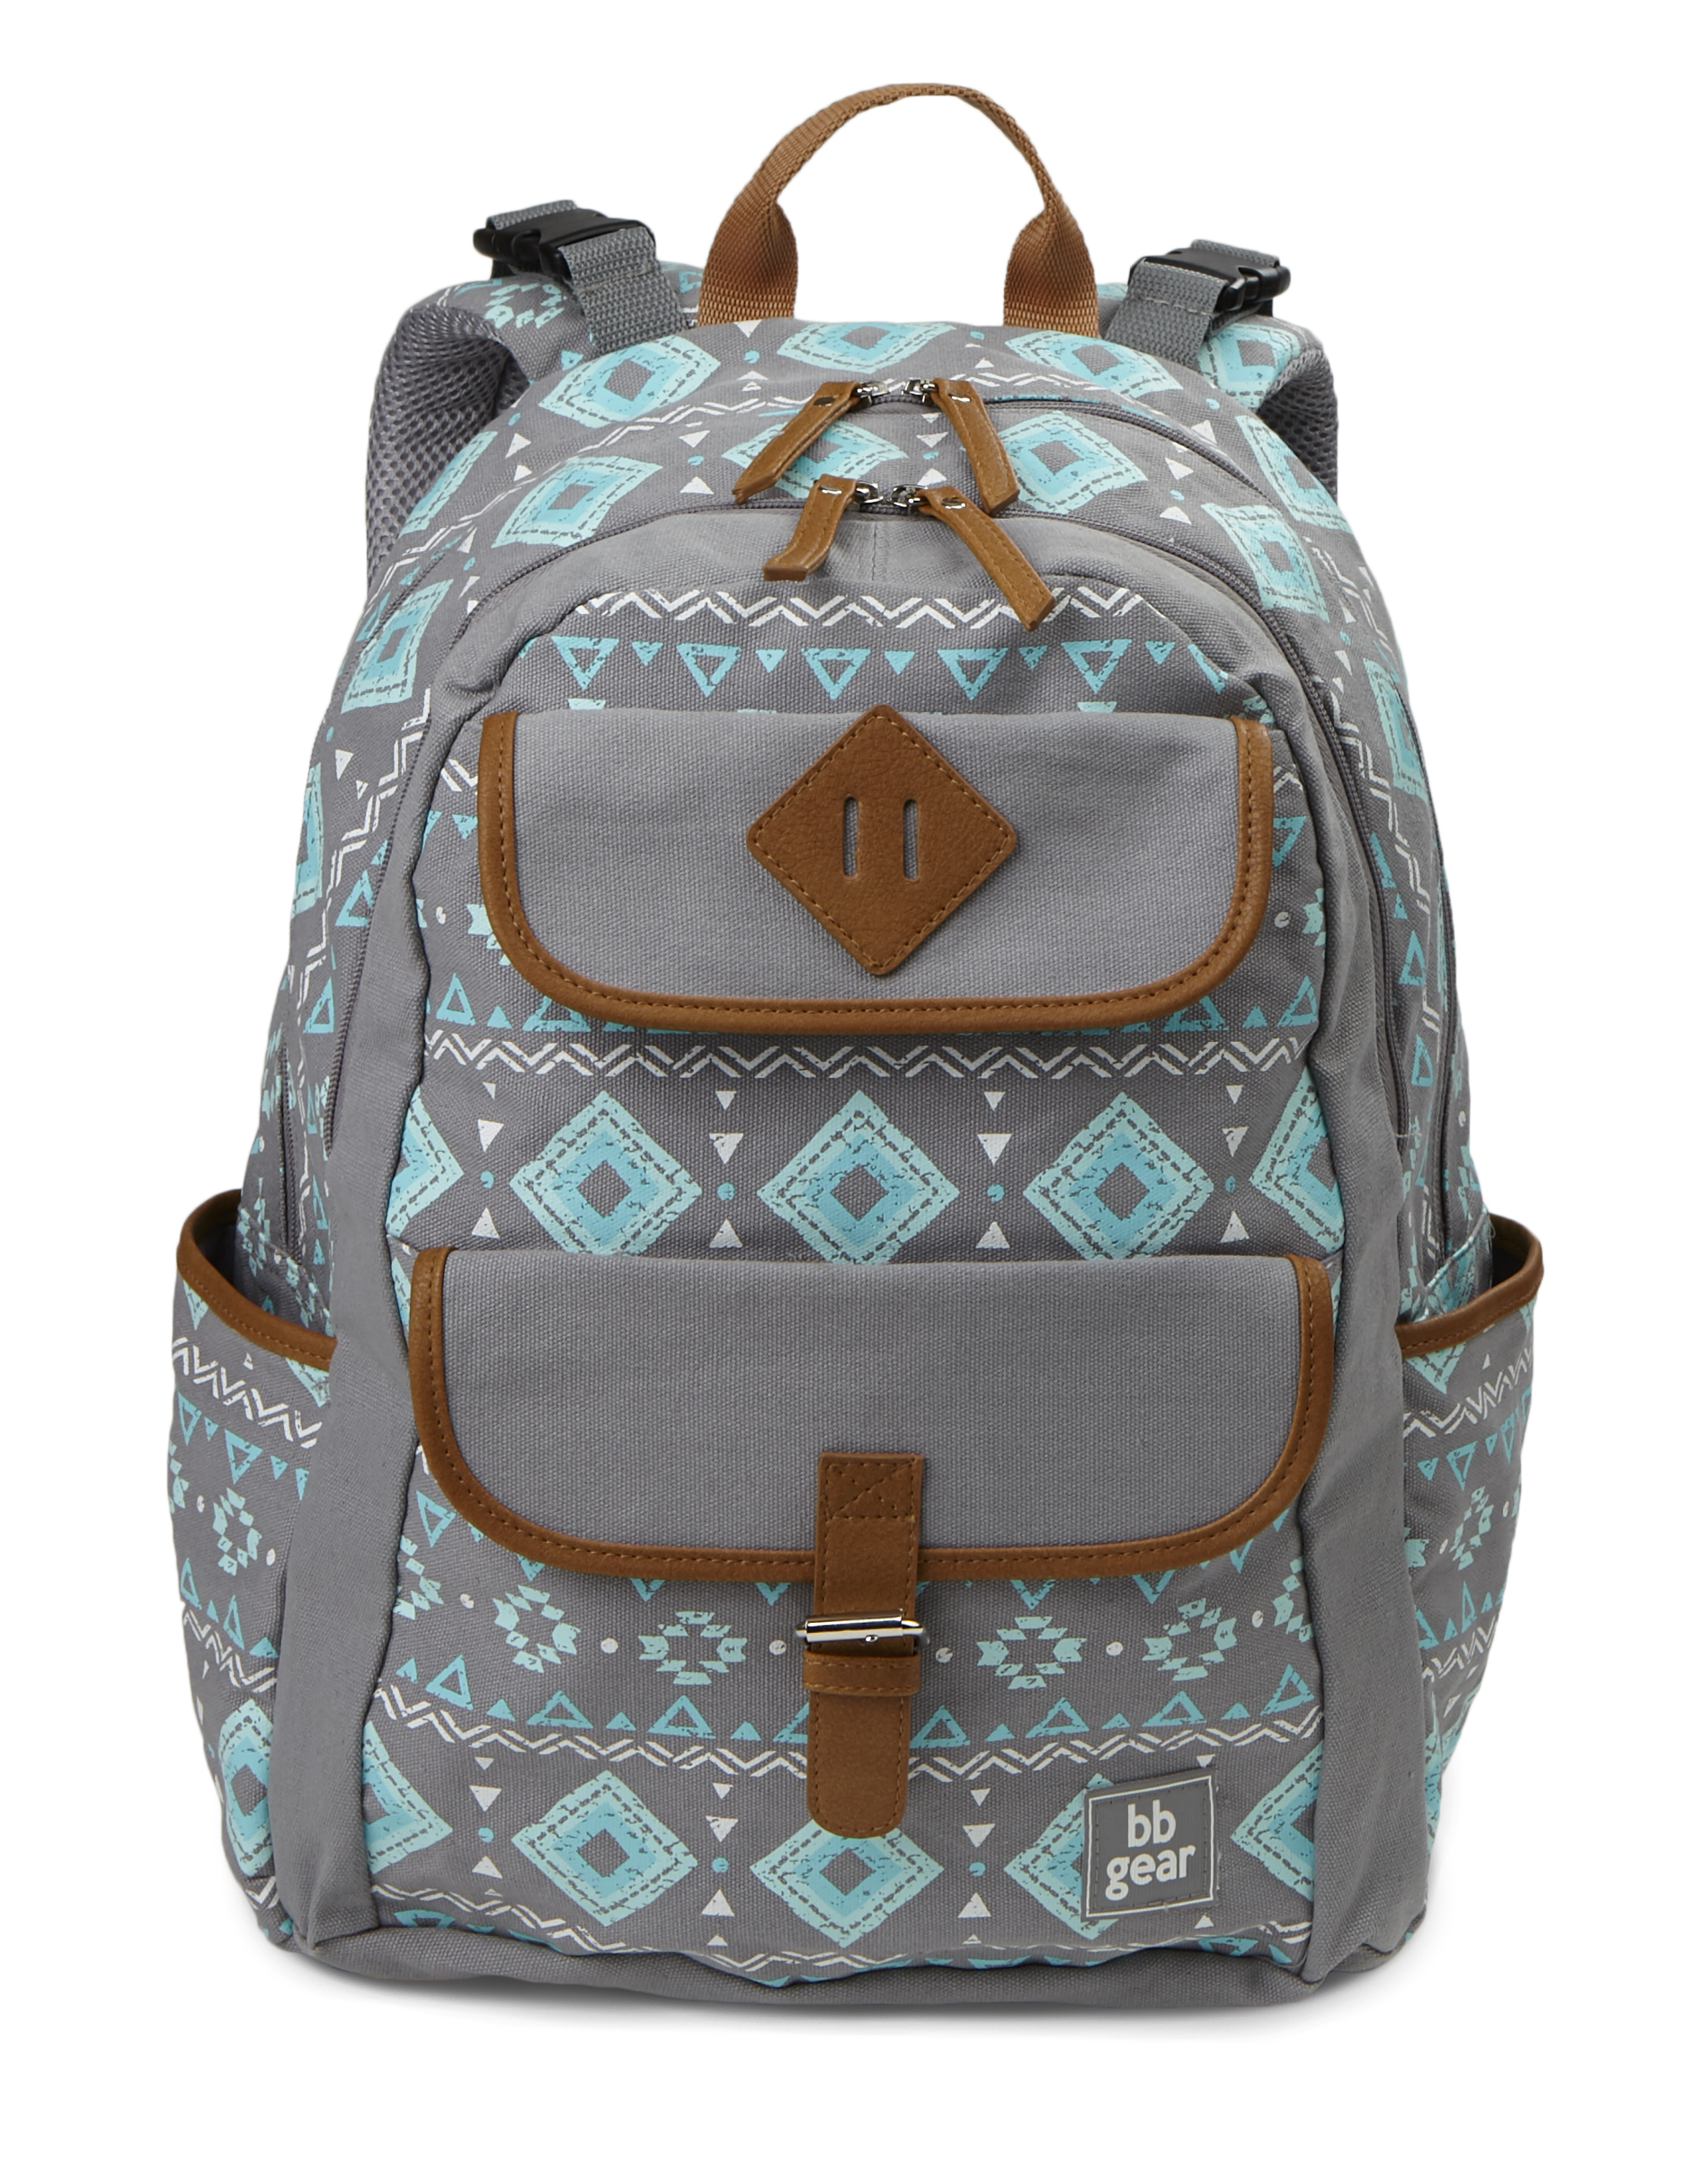 Baby Boom BB Gear Aztec Print Backpack Diaper Bag by Baby Boom BB Gear